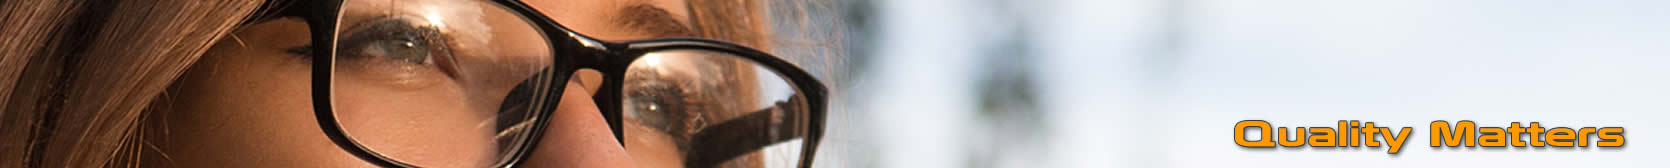 With a large range of eyegless and prescriotn sunglasses to choose from AusSpecs has what you need